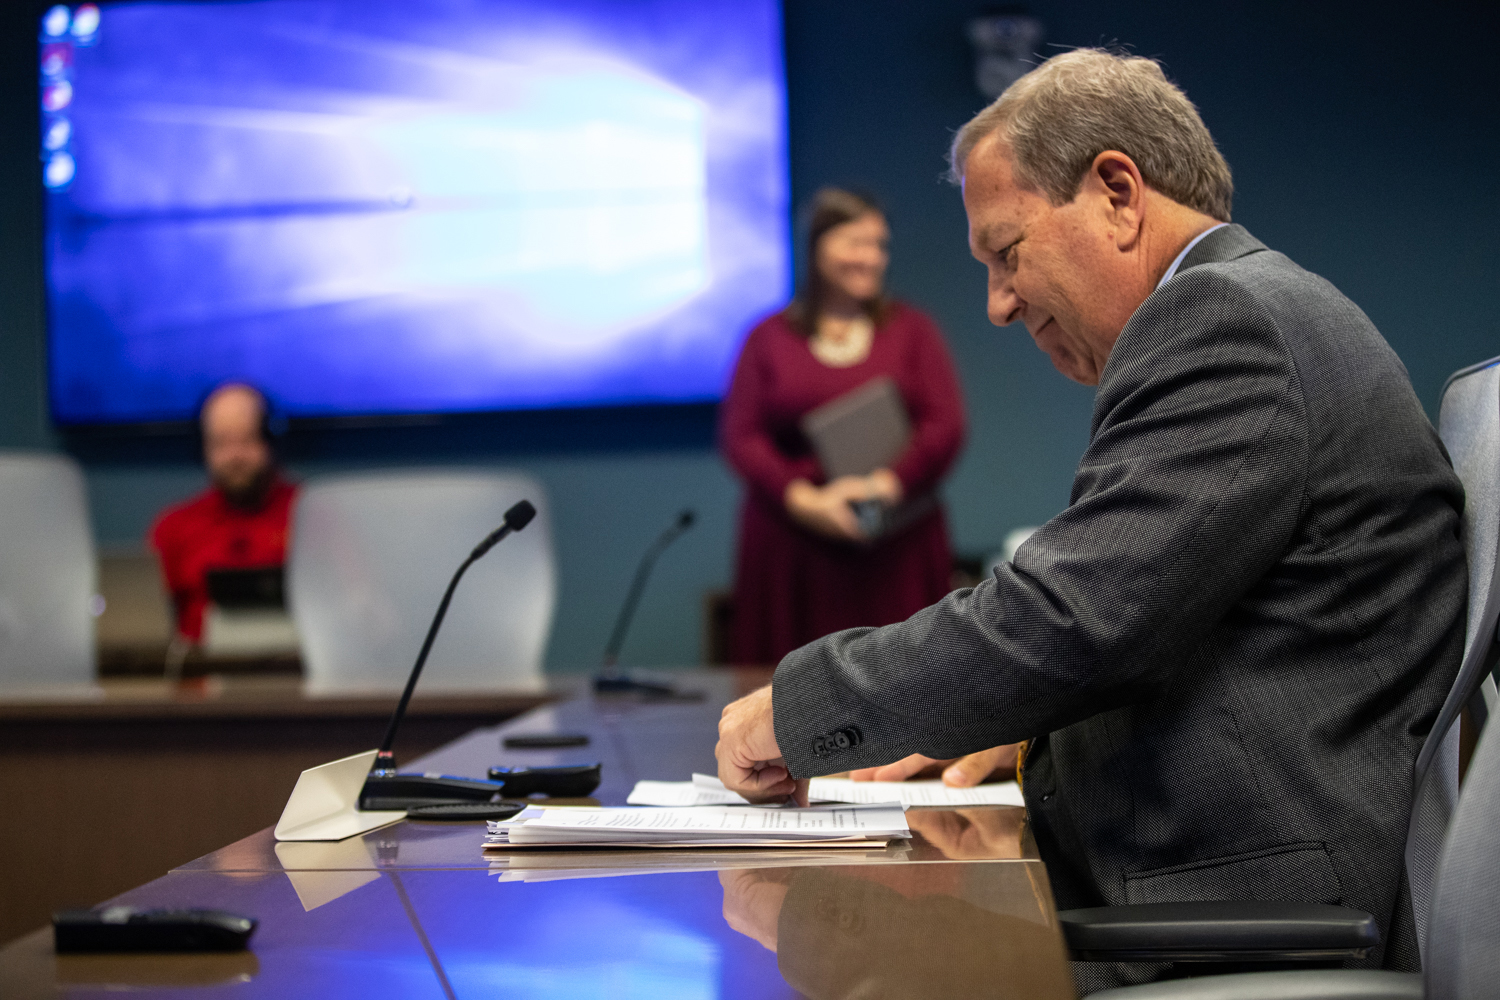 University of Iowa President Bruce Harreld prepares to speak to the state Board of Regents at a meeting in Urbandale on Tuesday, December 10, 2019. The regents voted unanimously to pass the public/private partnership.